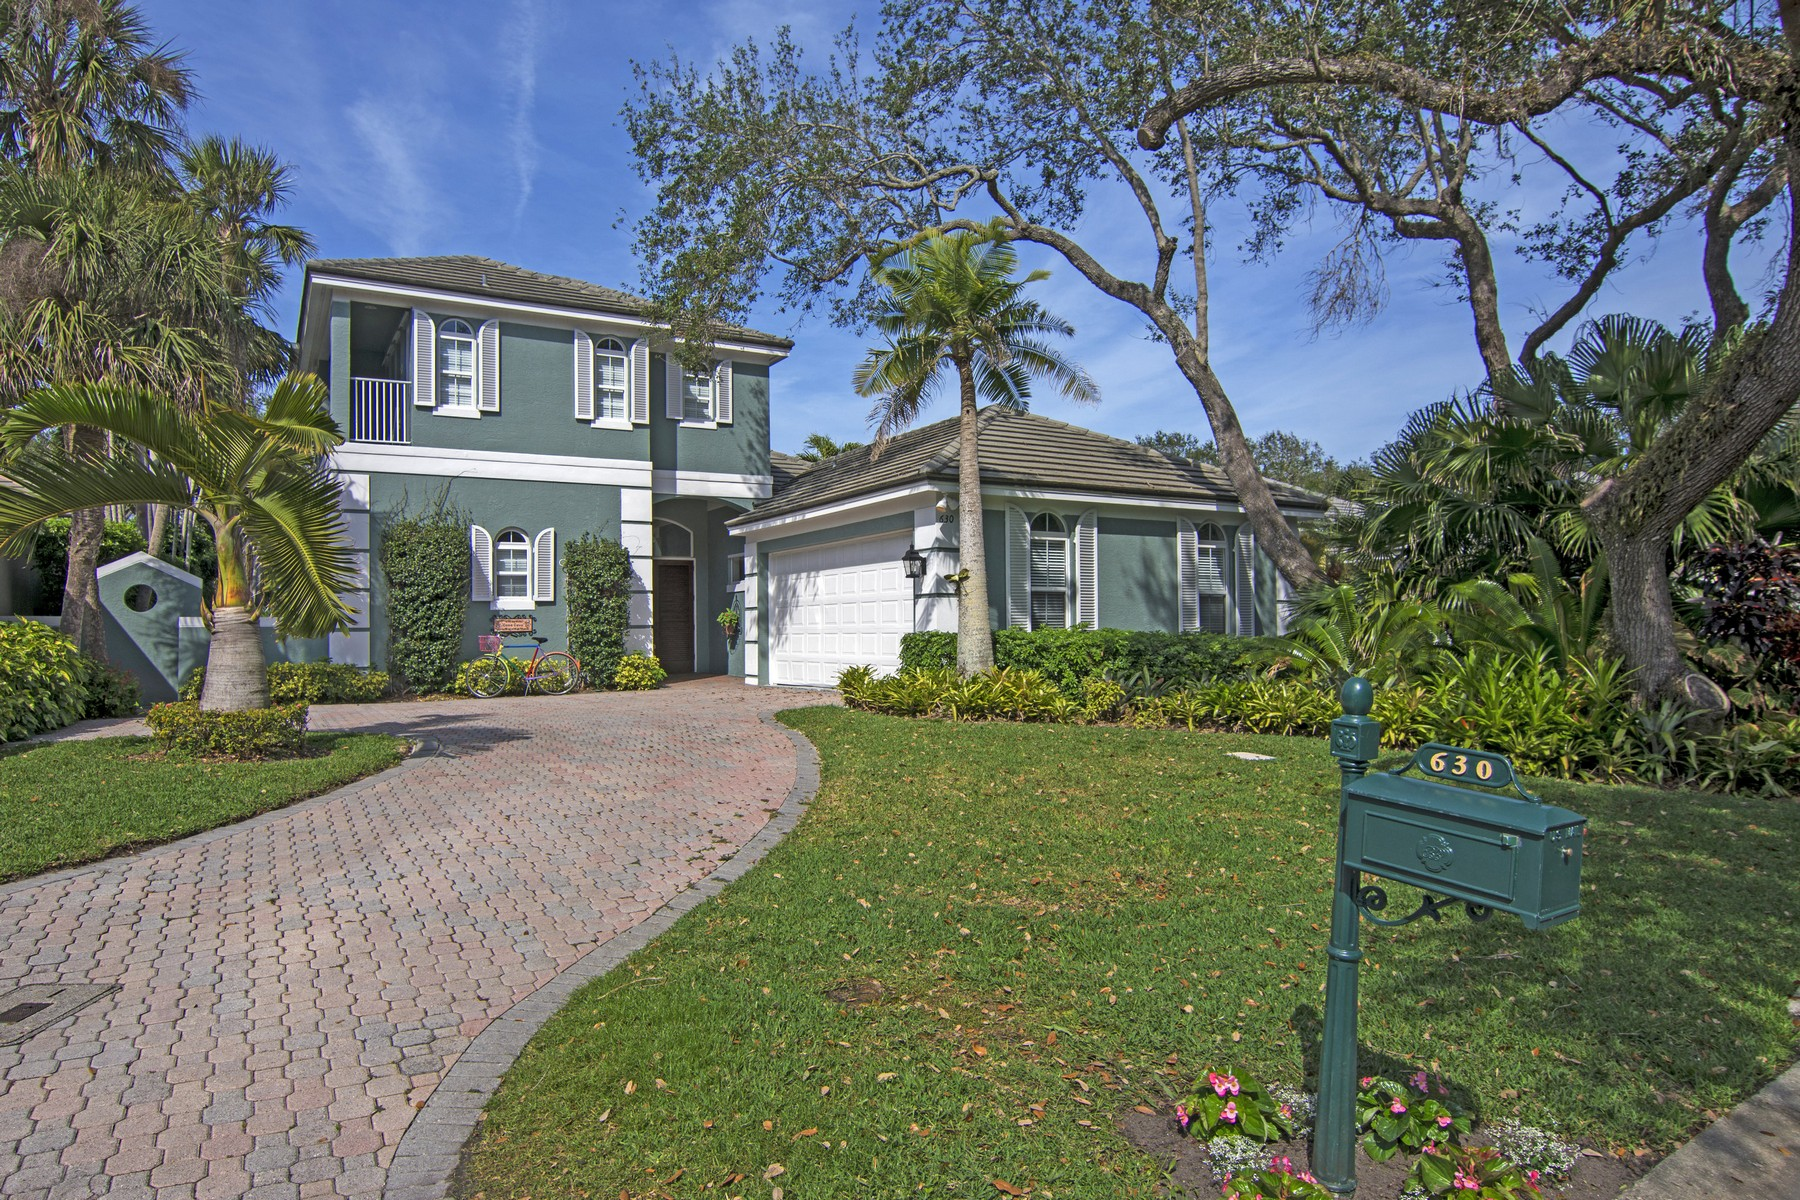 Casa Unifamiliar por un Venta en Sophisticated and Comfortable 630 Sable Oak Lane, Vero Beach, Florida, 32963 Estados Unidos